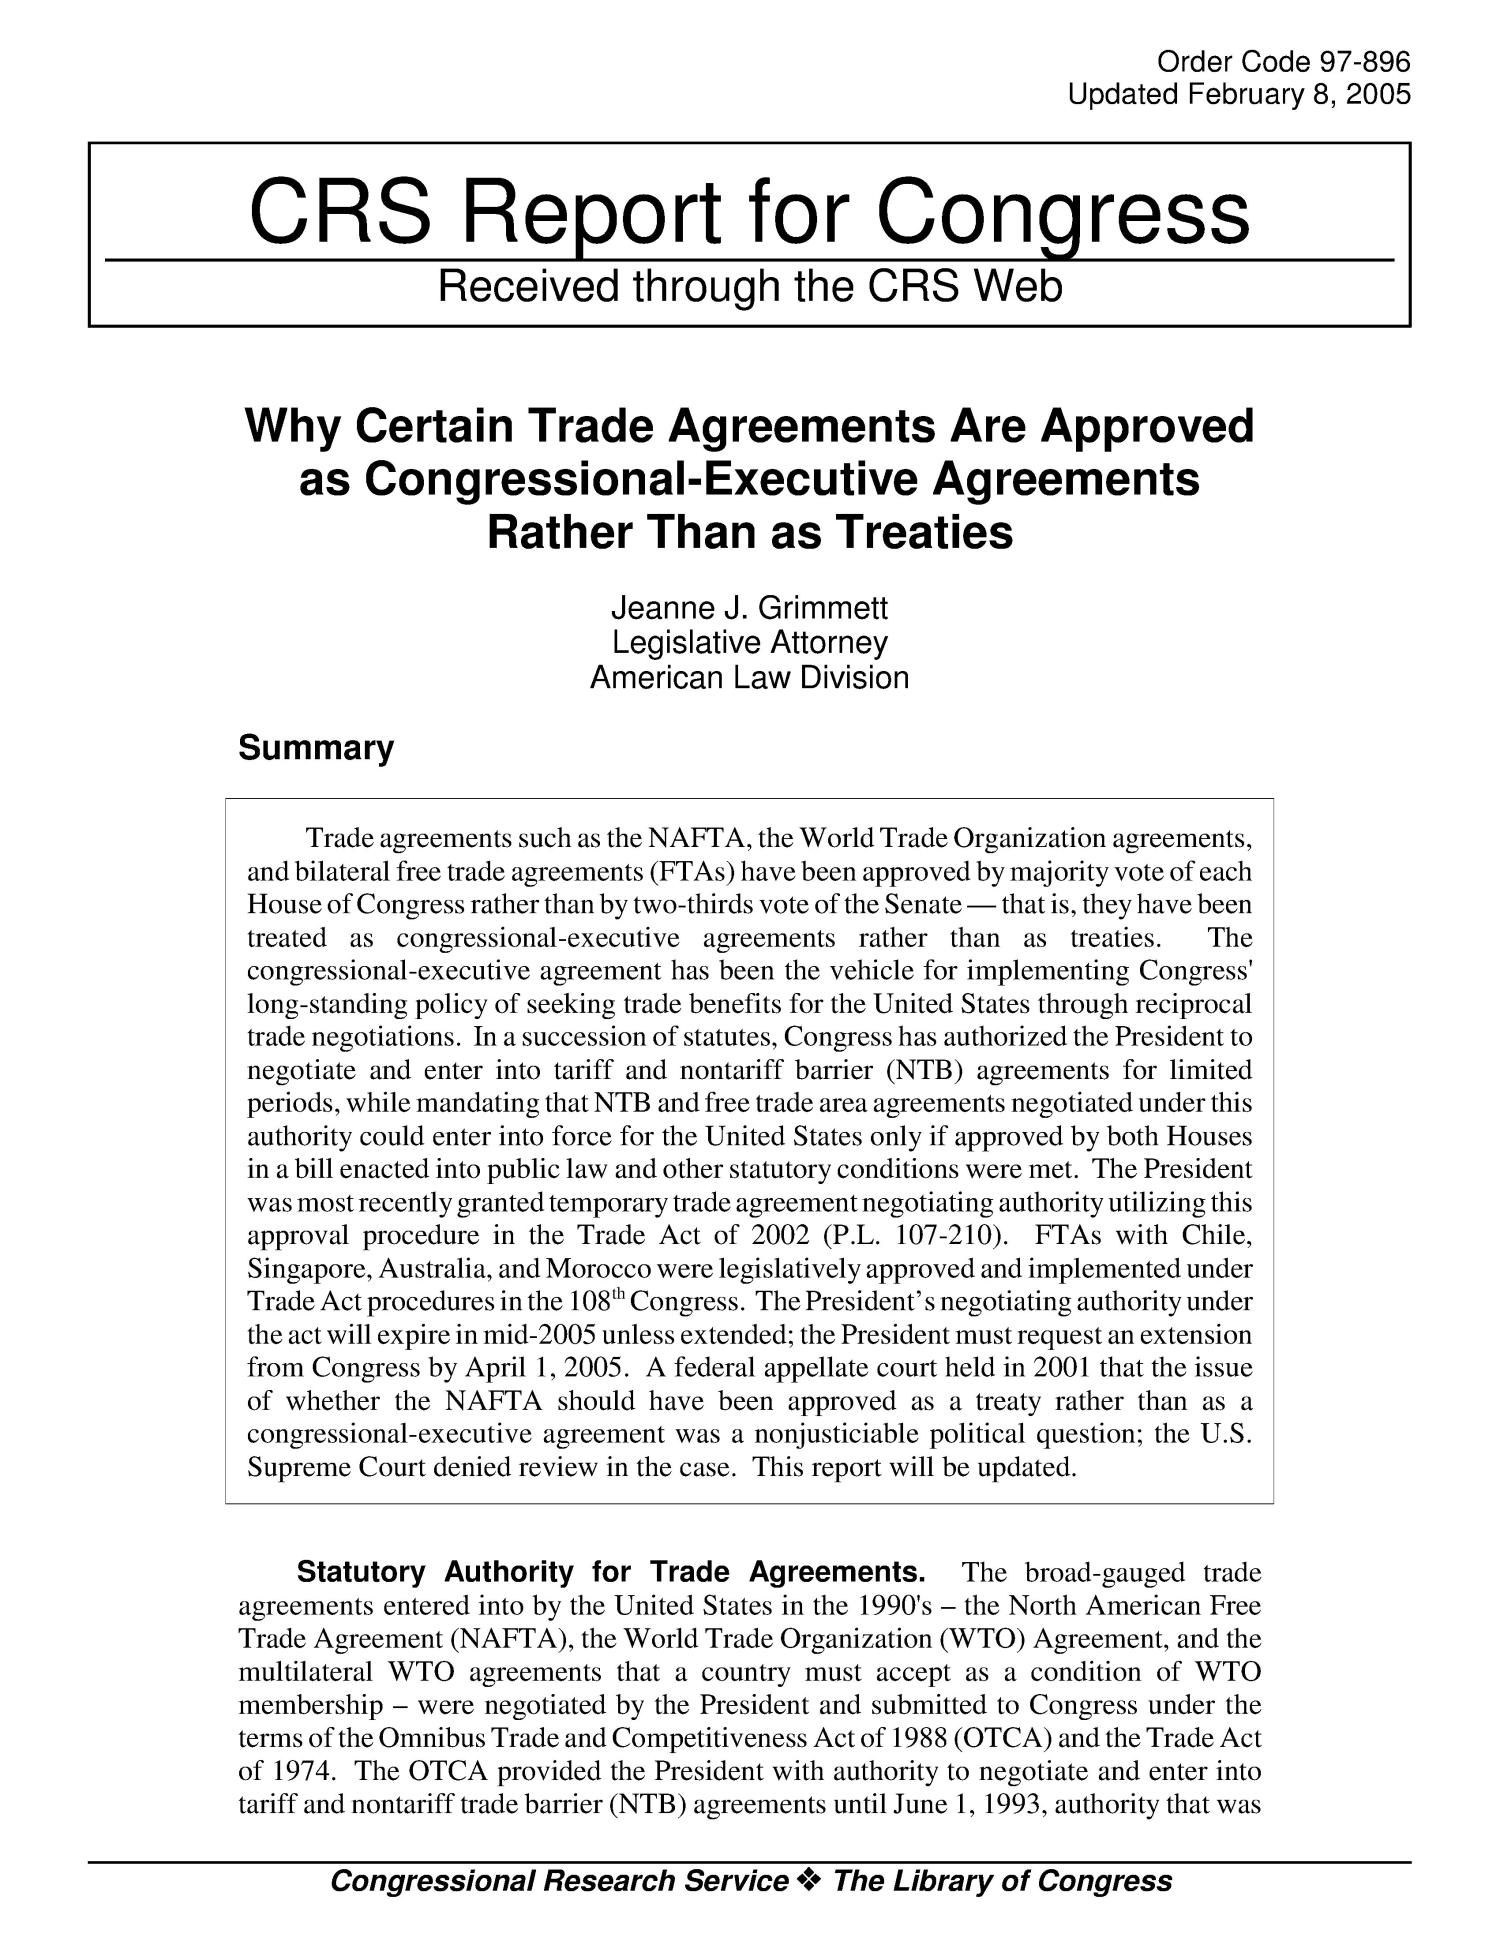 Why Certain Trade Agreements Are Approved as Congressional-Executive Agreements Rather Than as Treaties                                                                                                      [Sequence #]: 1 of 6